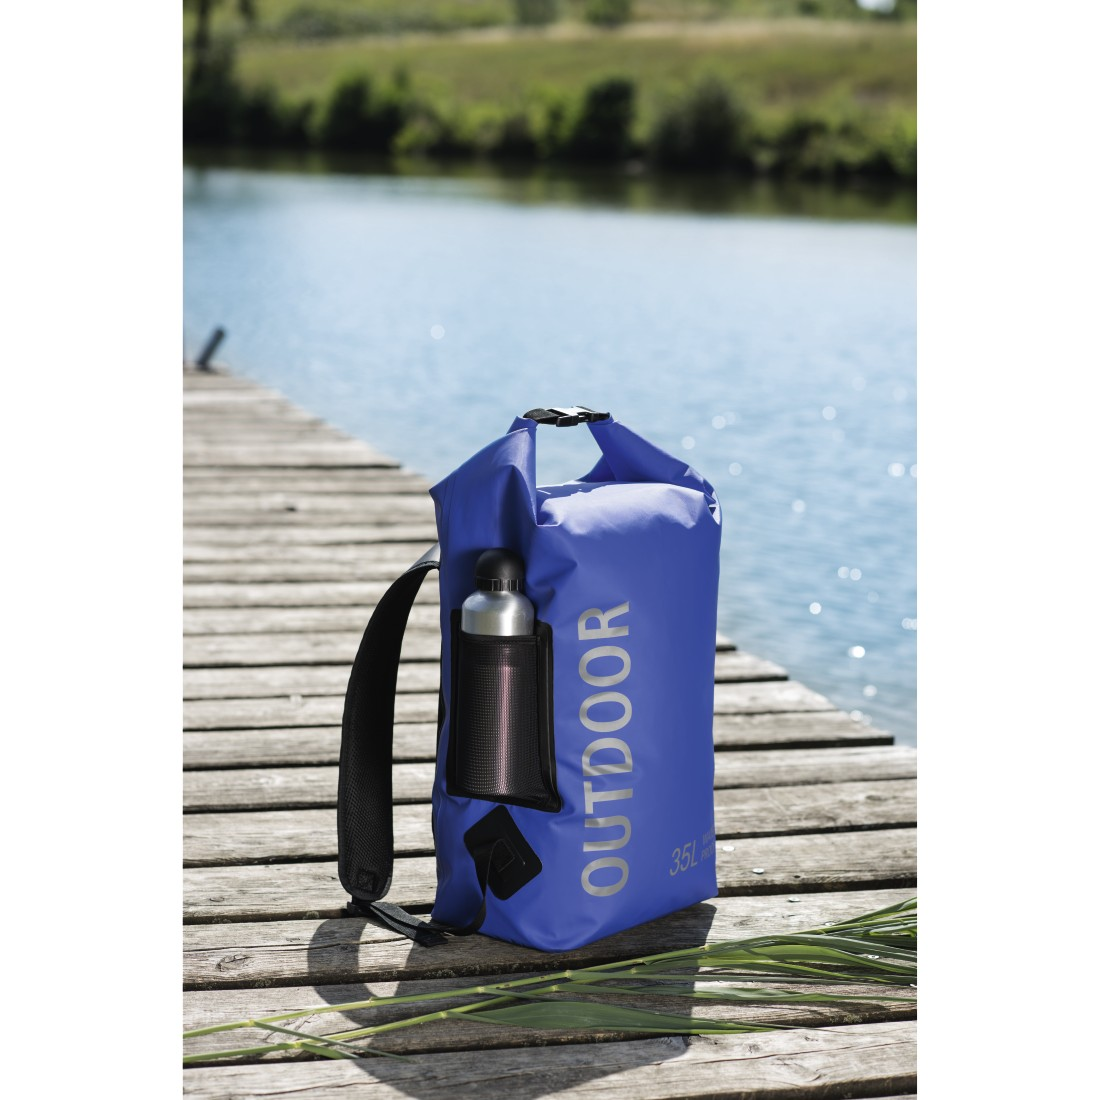 awx4 High-Res Appliance 4 - Hama, Outdoor-rugzak, 35 l, blauw